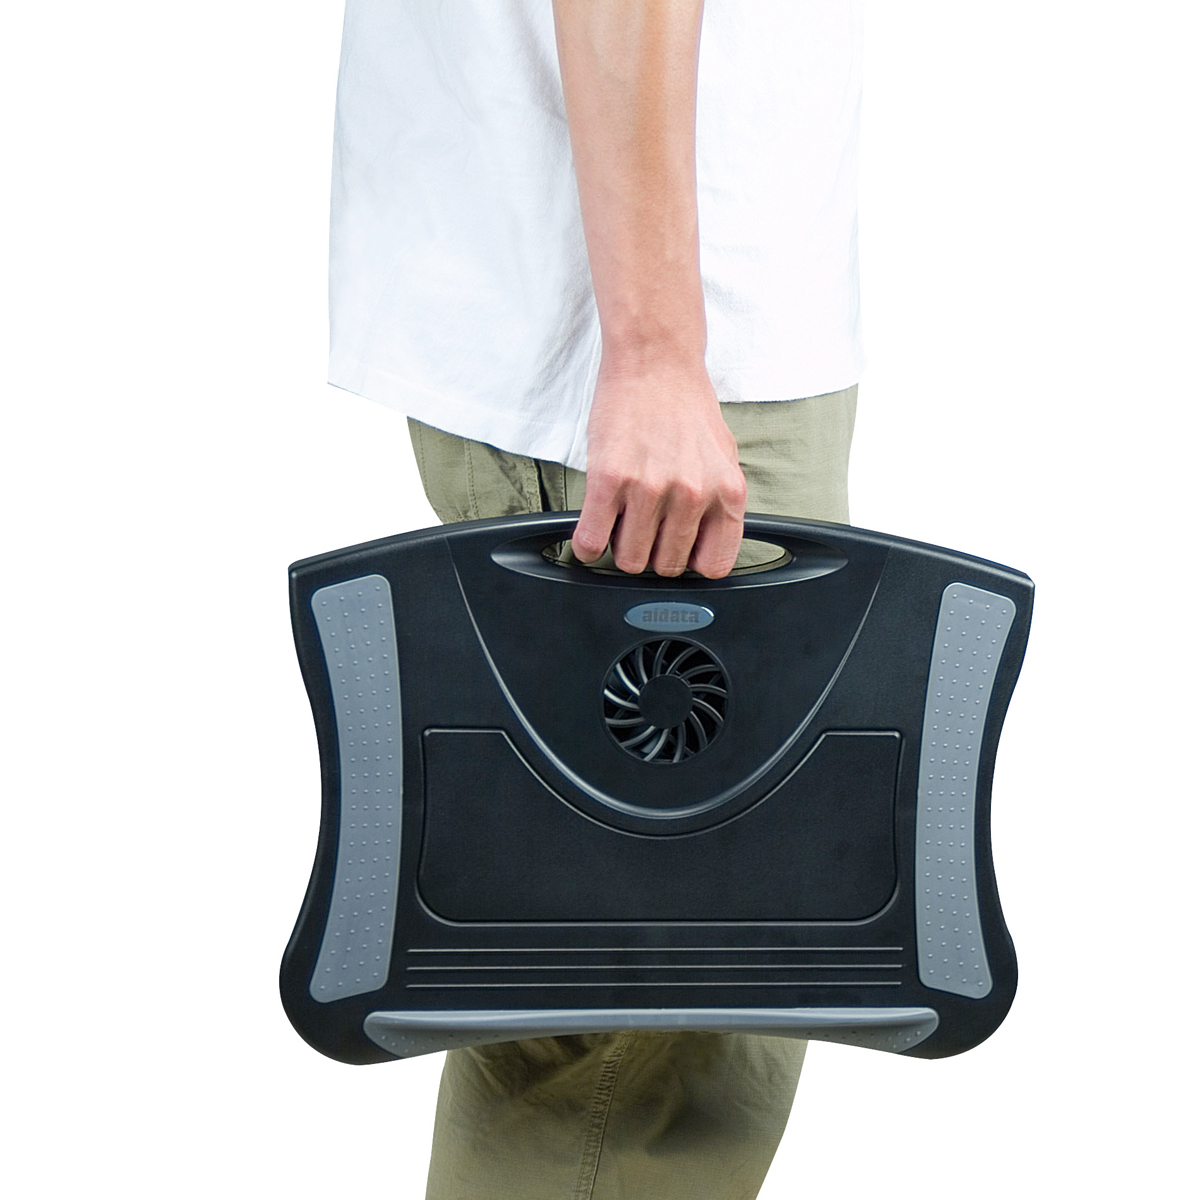 Lapboard Multi Function Laptop Cooling Station By Aidata